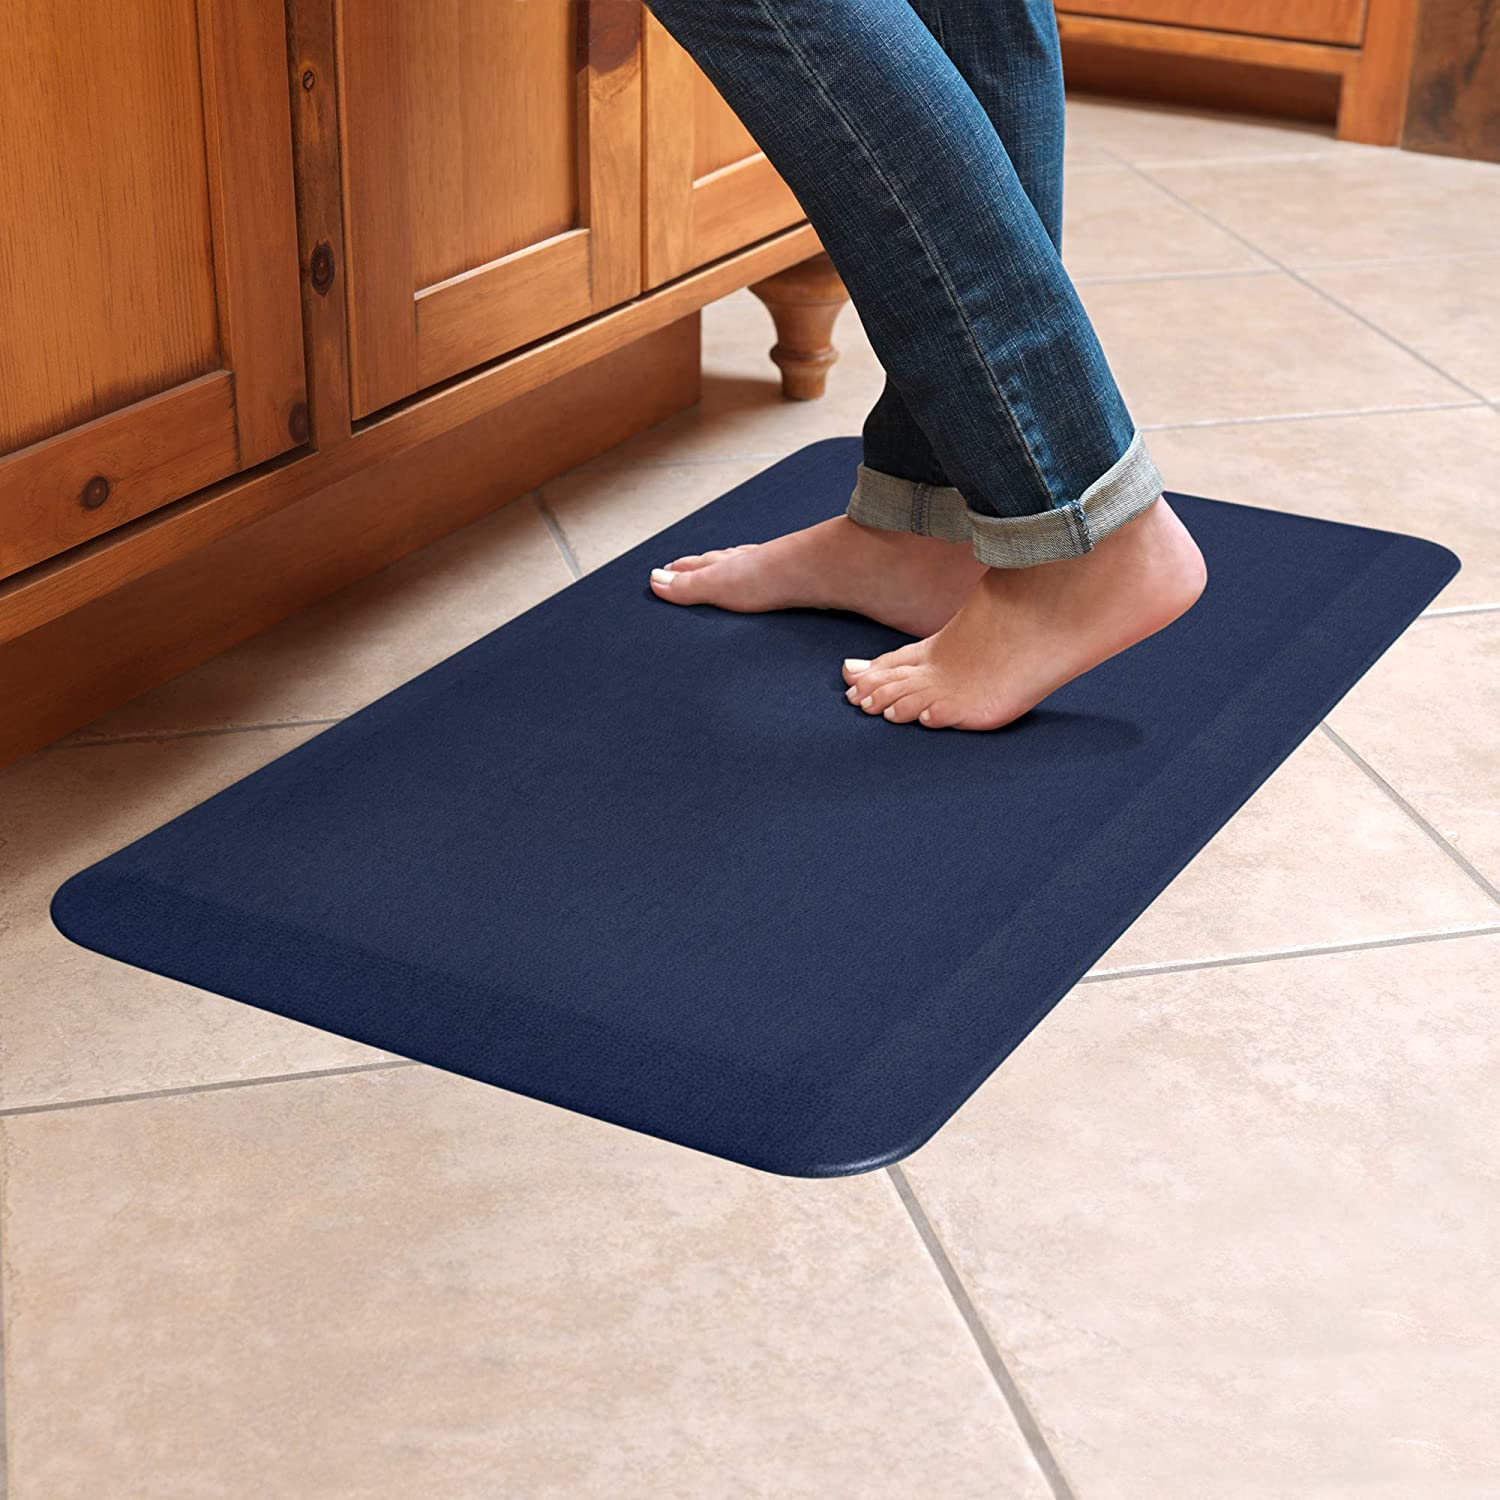 """NewLife by GelPro Anti-Fatigue Designer Comfort Kitchen Floor Mat, 20x32"""", Leather Grain Navy Stain Resistant Surface with 3/4"""" Thick Ergo-foam Core for Health and Wellness"""